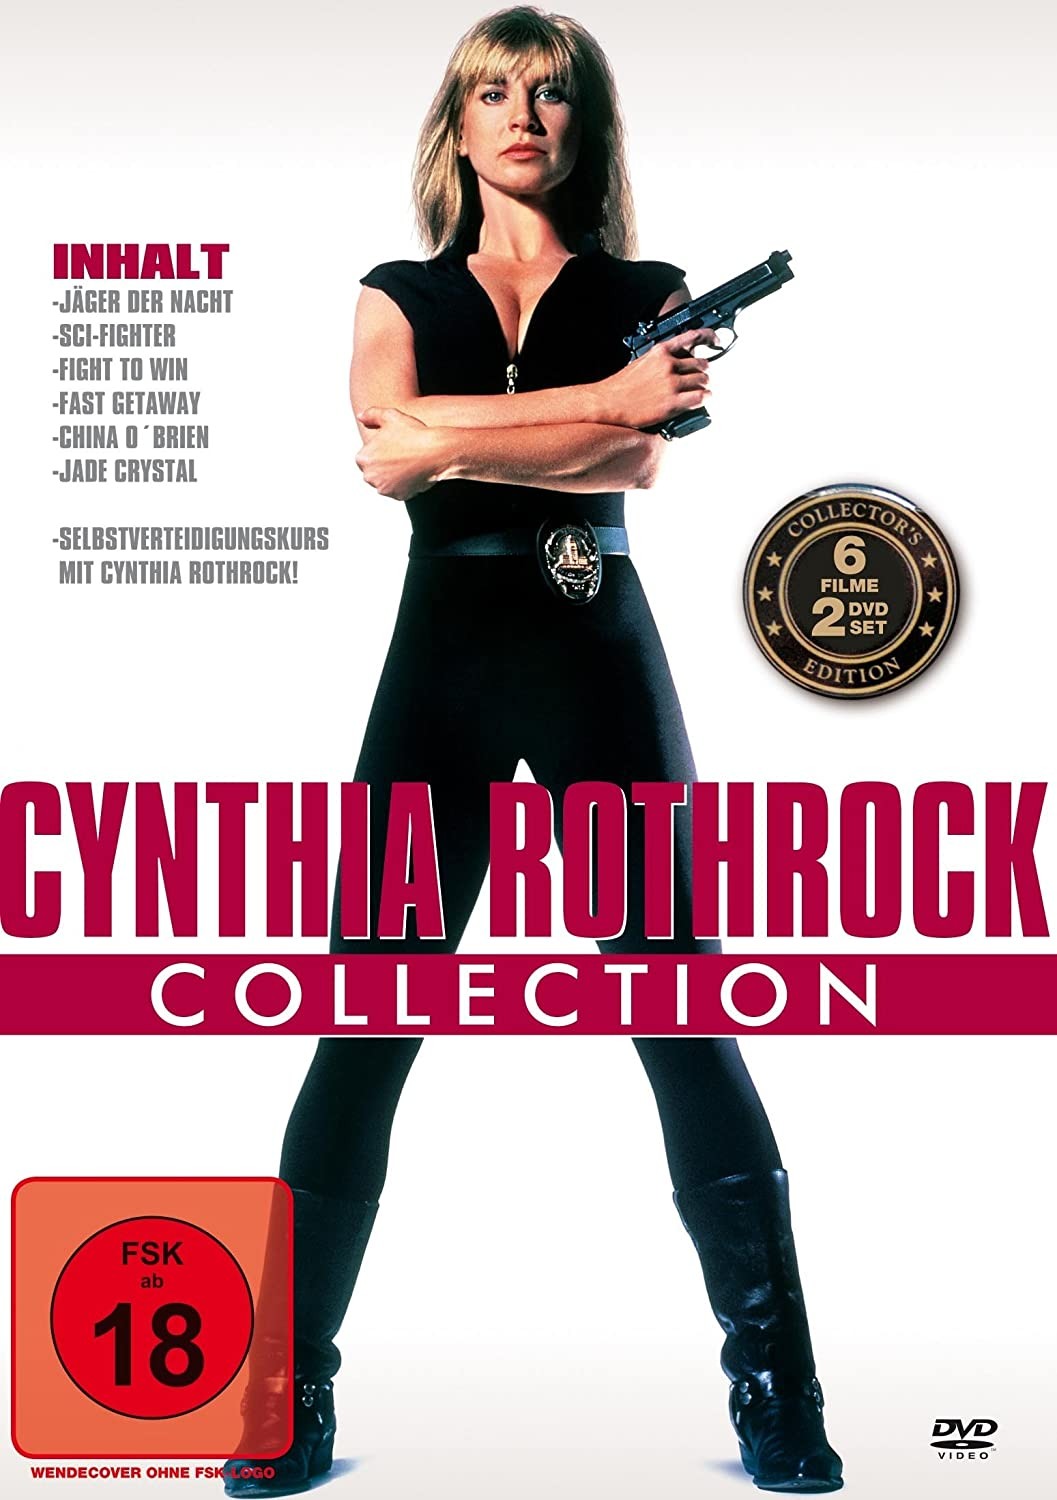 Cynthia Rothrock Today Cynthia Rothrock